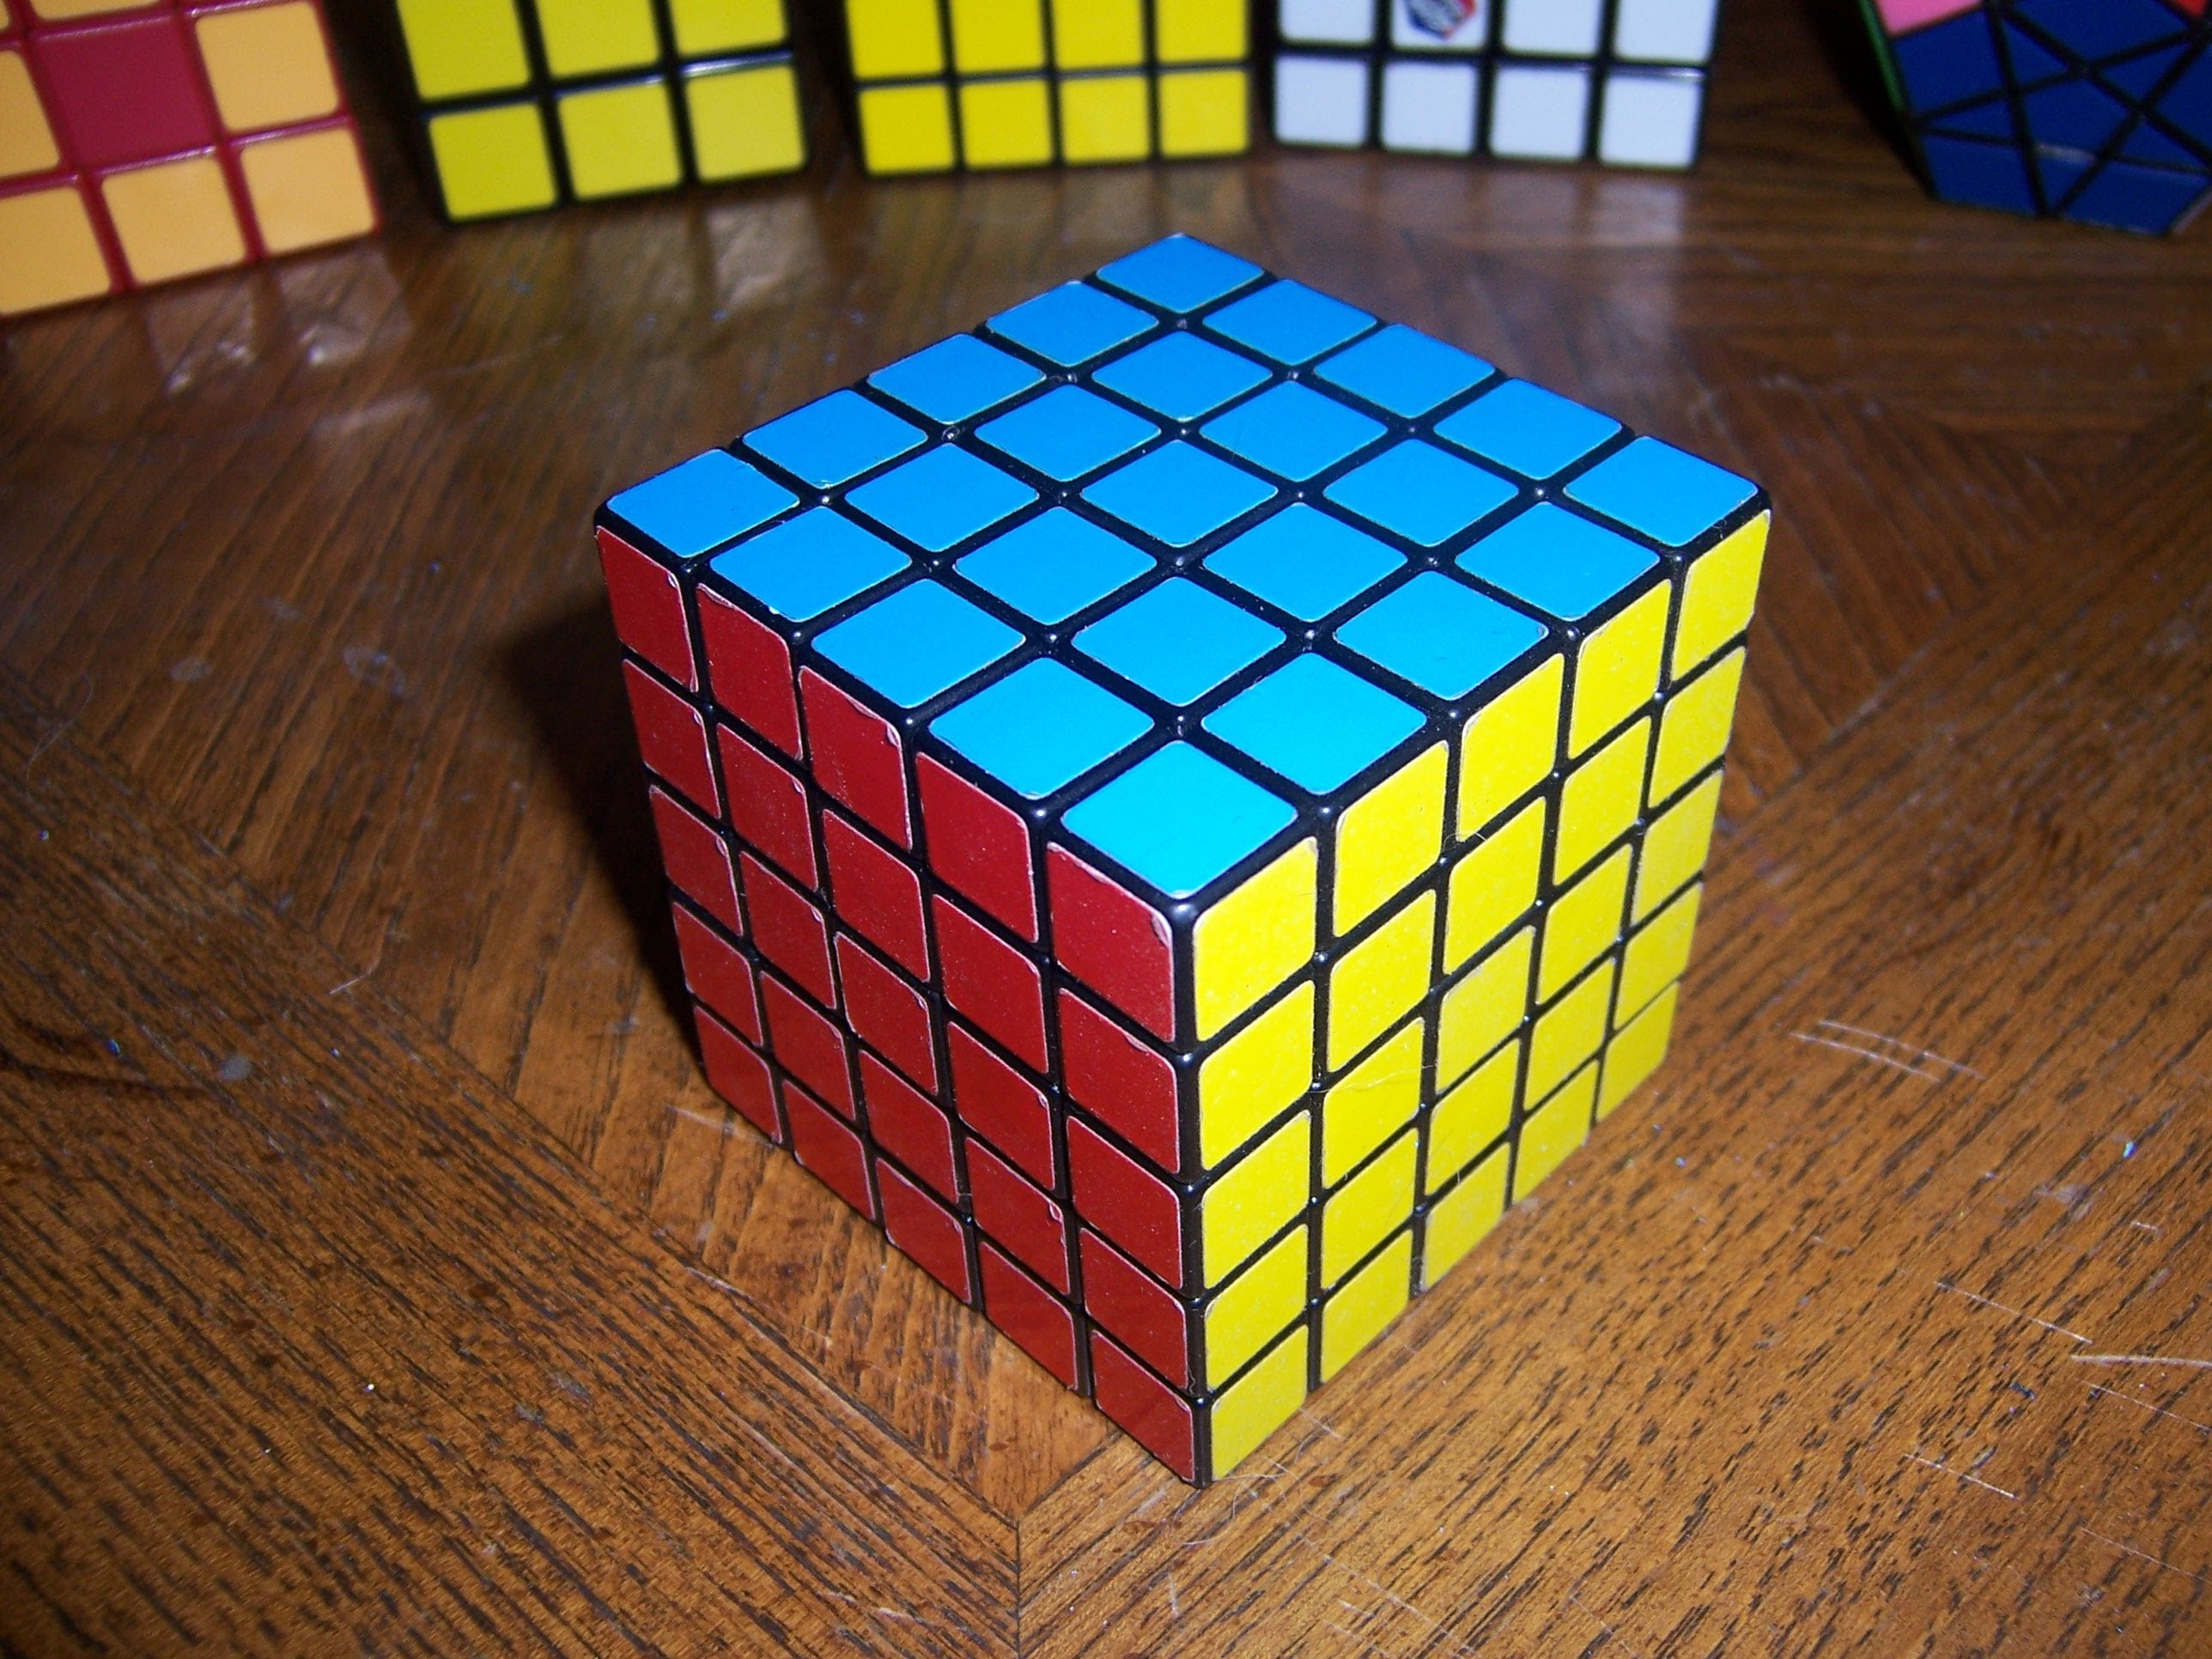 How To Solve a 5x5x5 Rubik's Cube Part 1 5